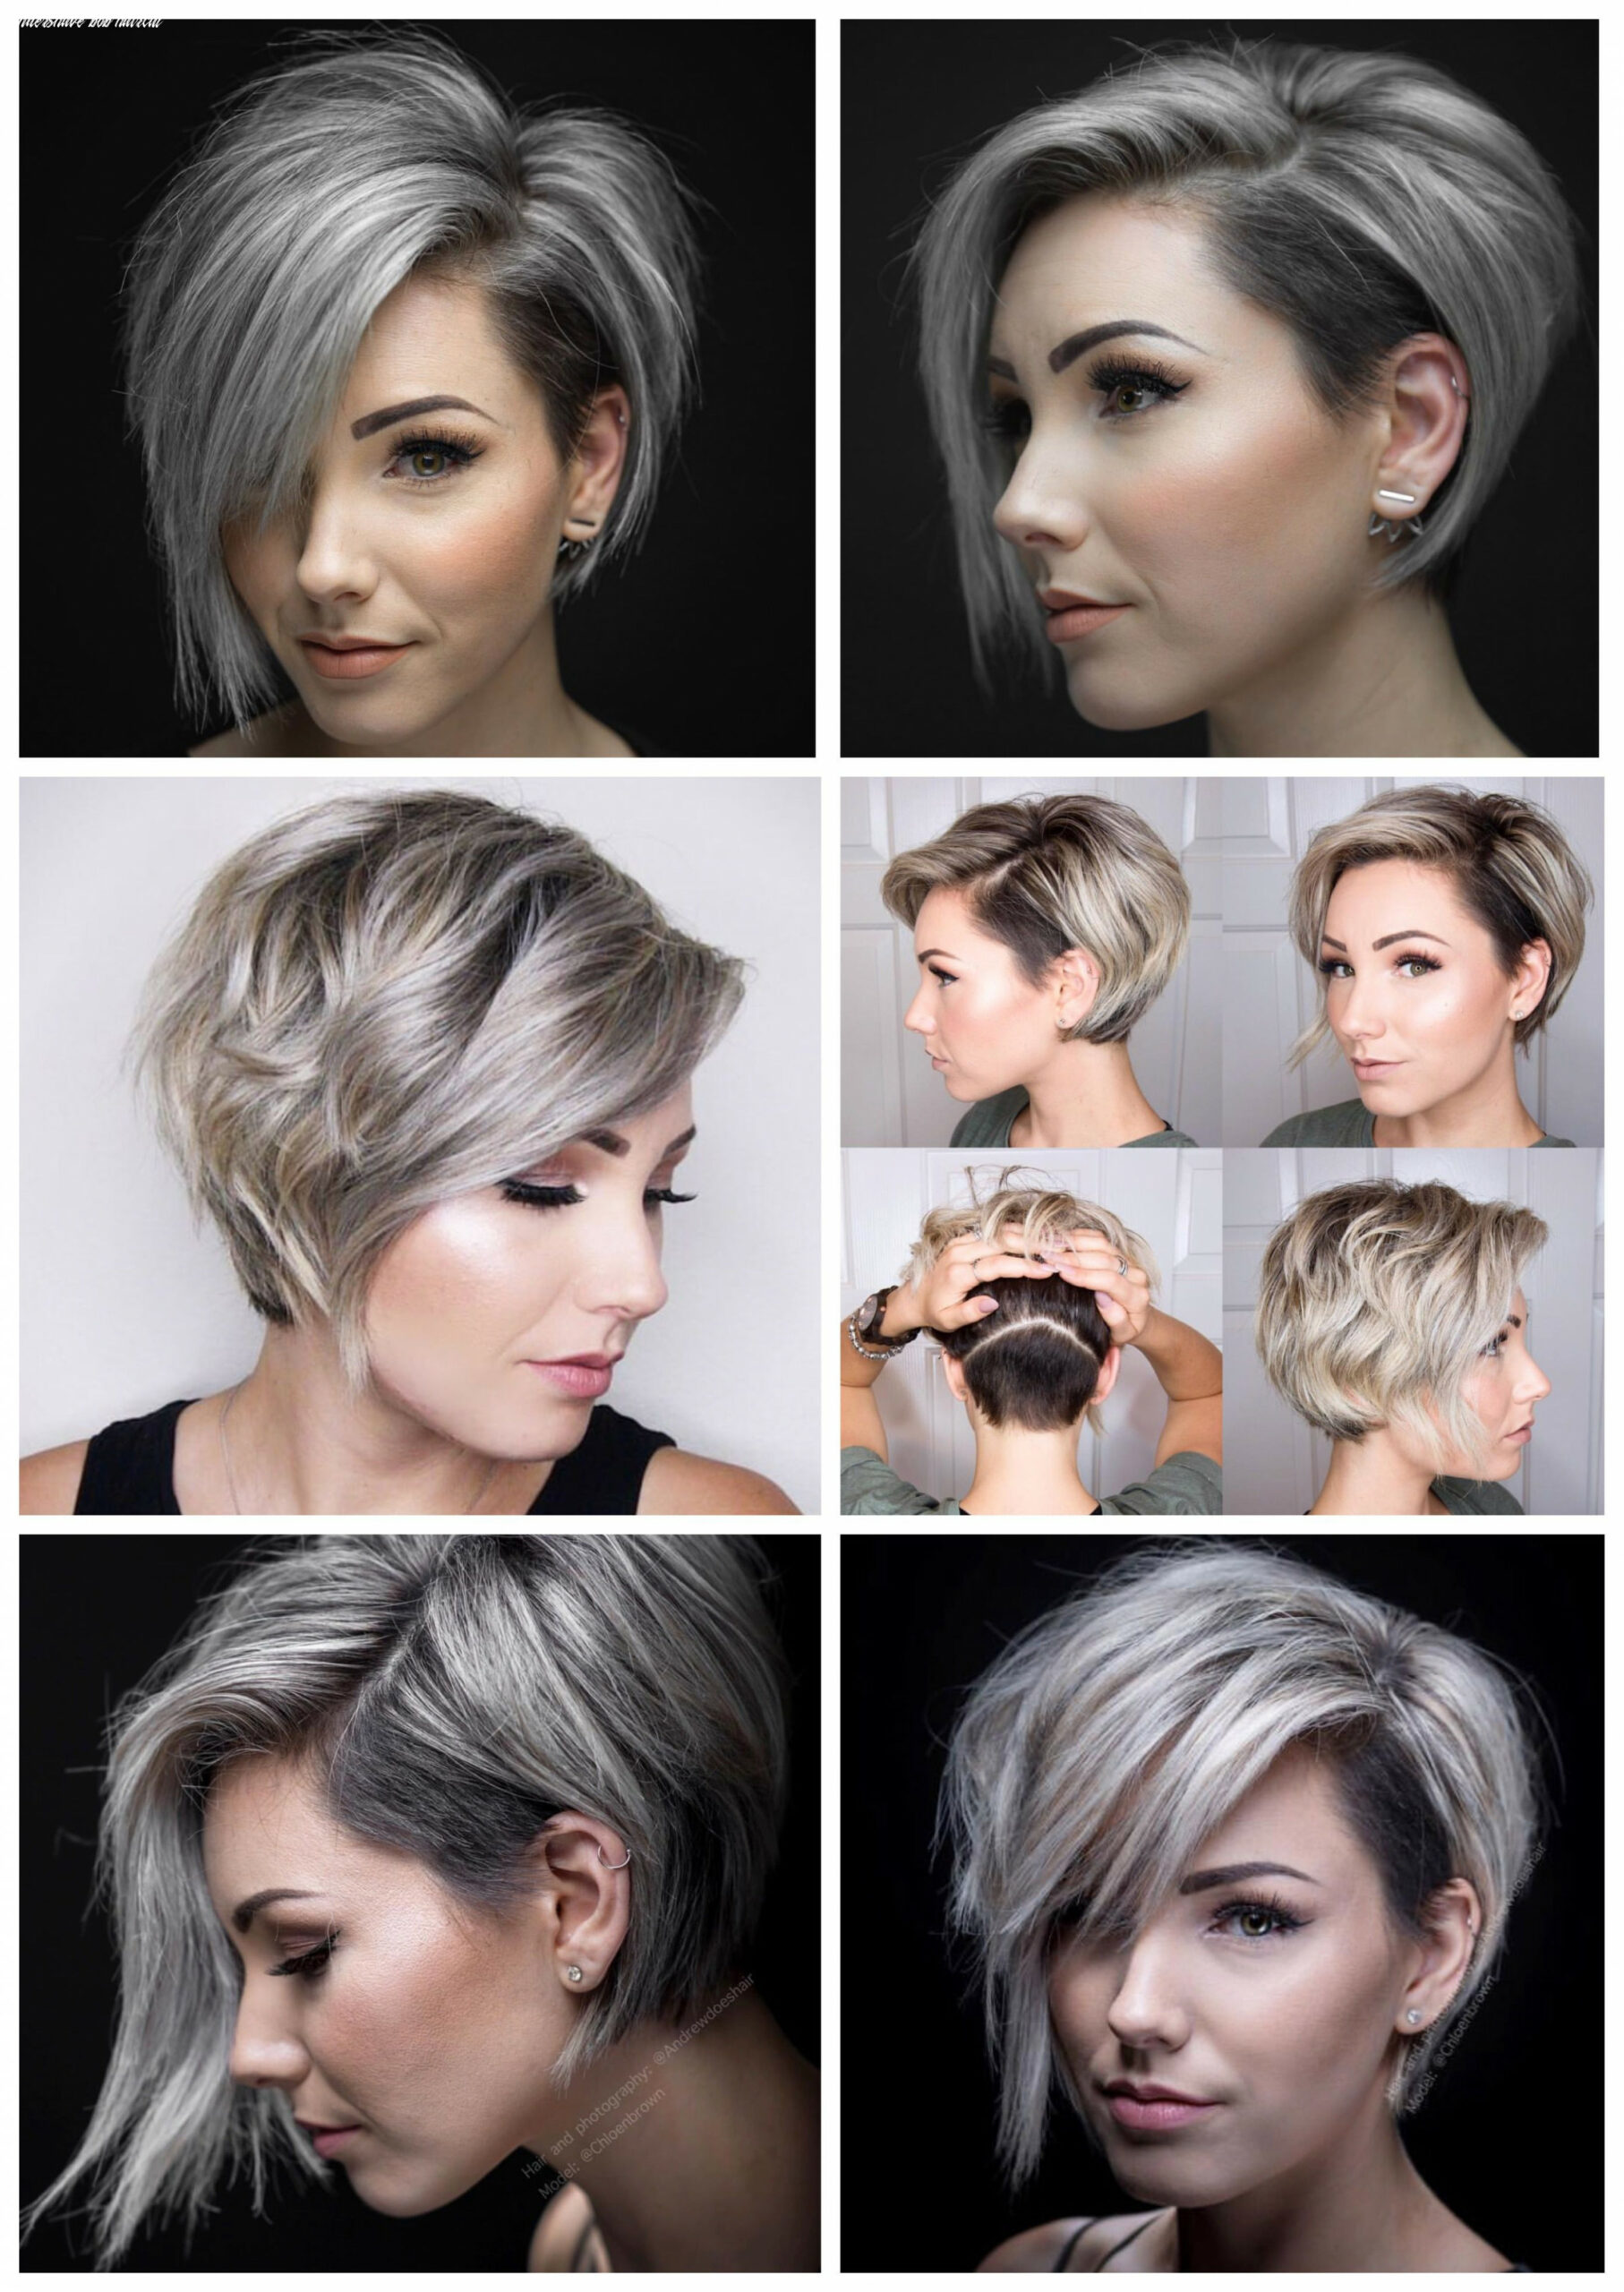 Pin on beauty undershave bob haircut